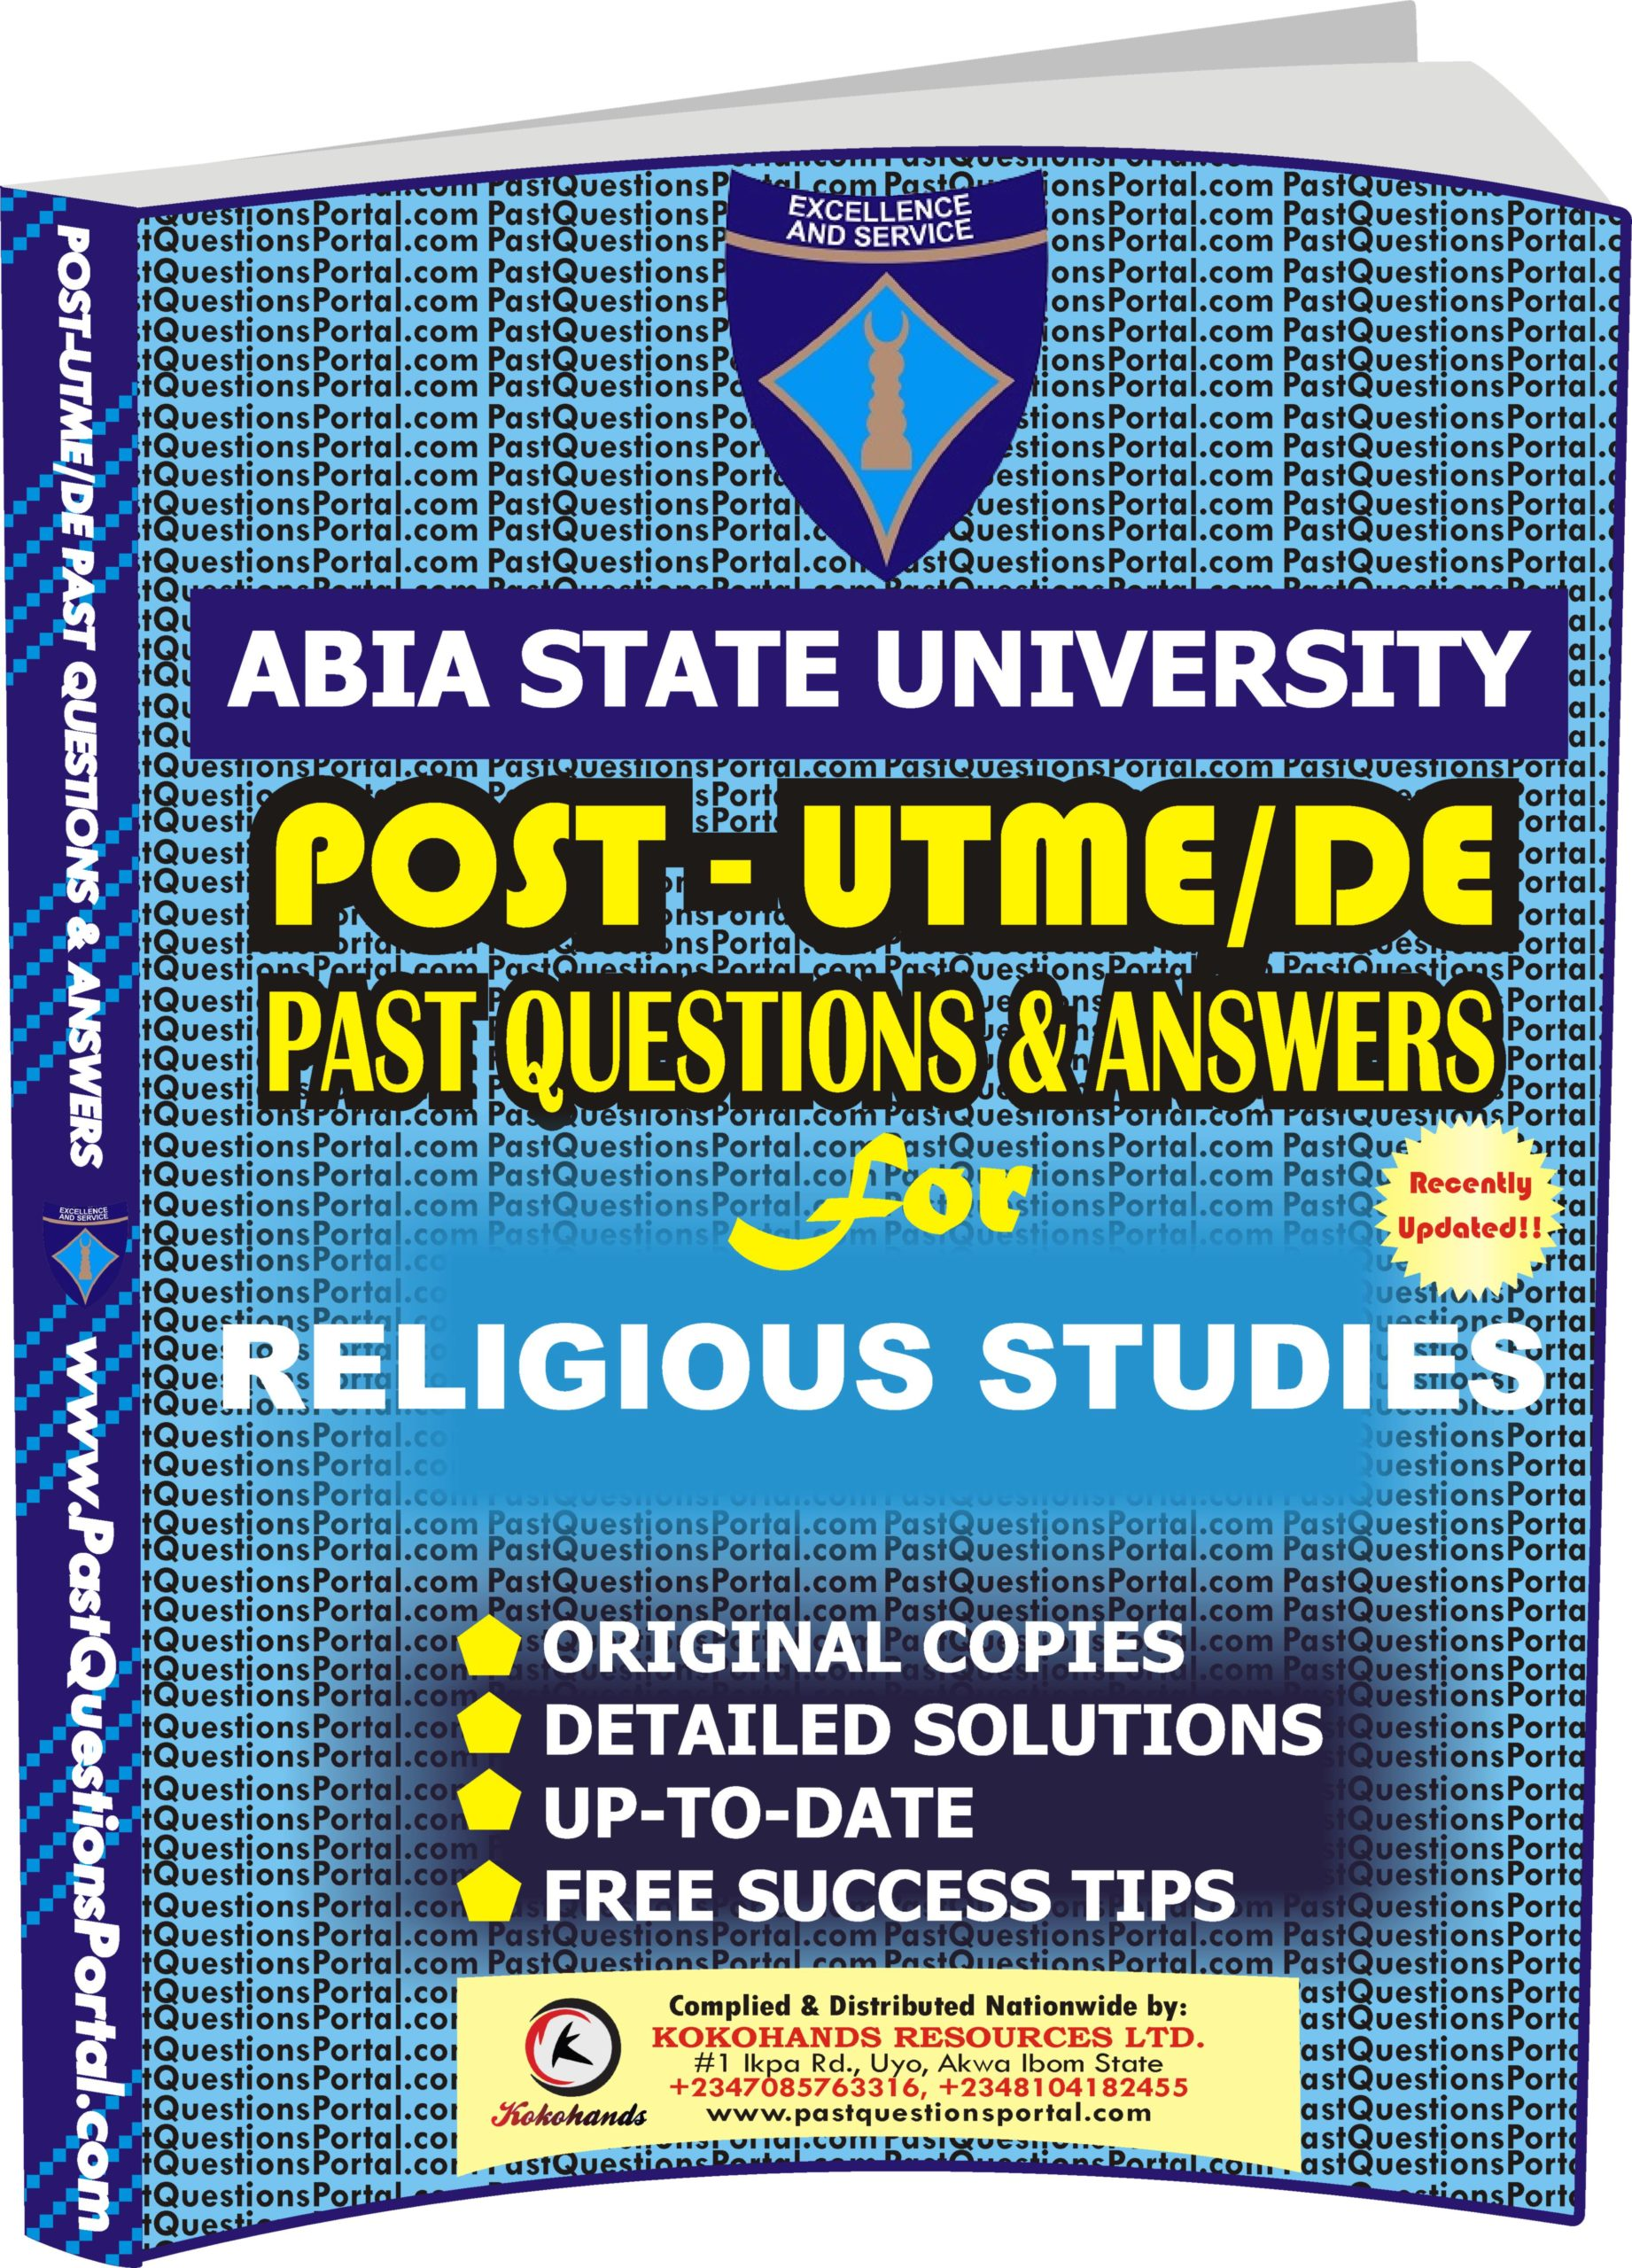 ABSU Post UTME Past Questions for RELIGIOUS STUDIES